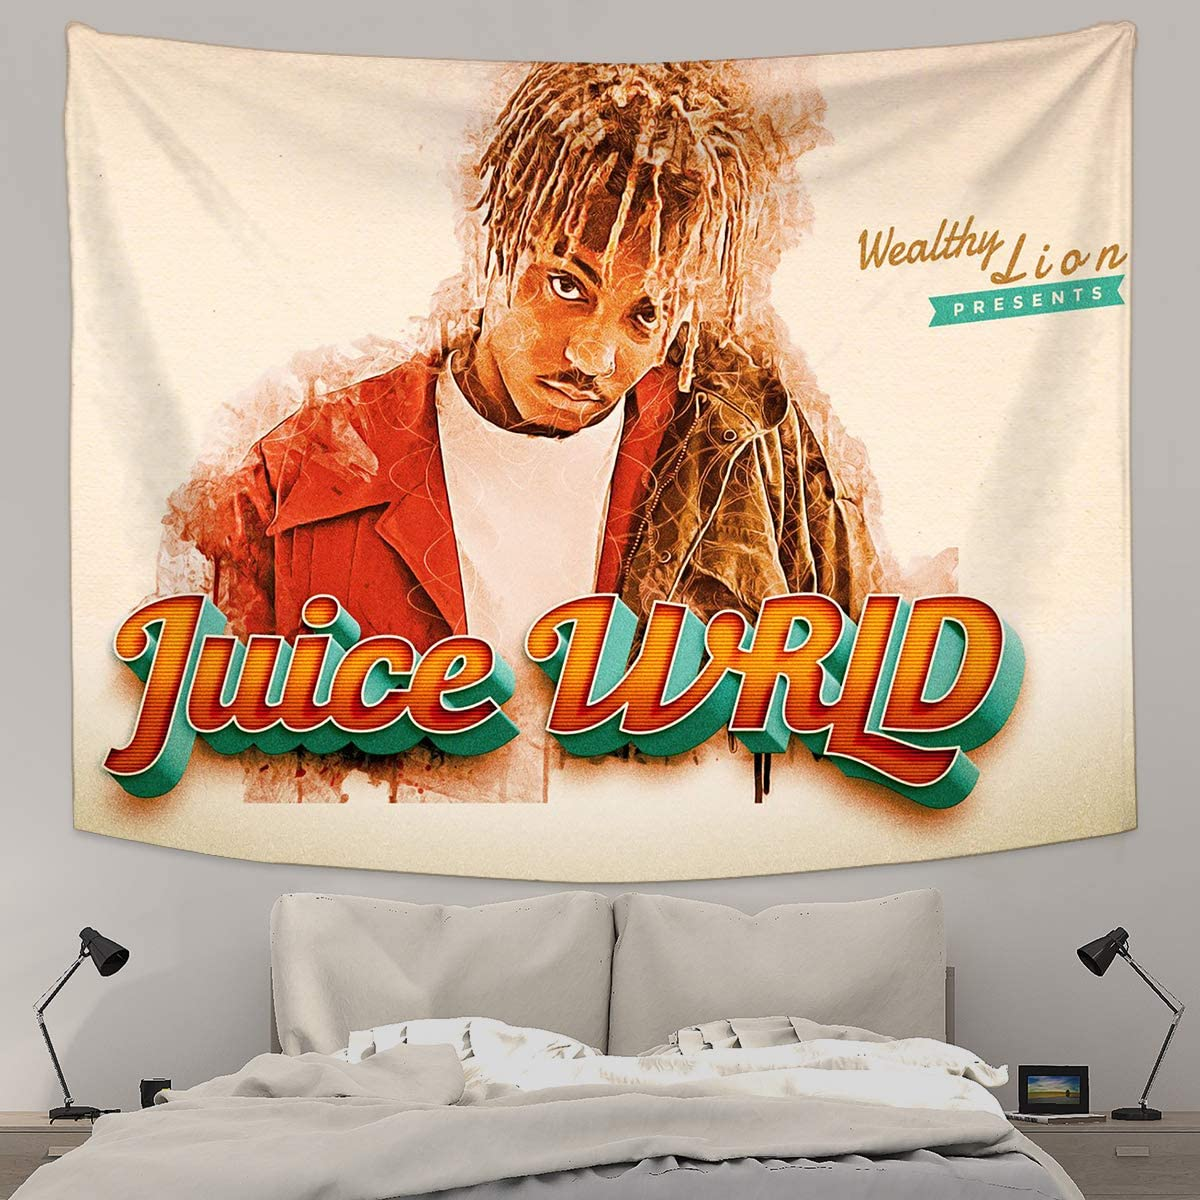 NOT DuoNun Juice Wrld Mural for Wall Hanging Tapestries HD Print Tapestry Blanket Wall Tapestry for Bedroom, Living Room, Dorm, Home Decoration 59.1 x 82.7 Inch